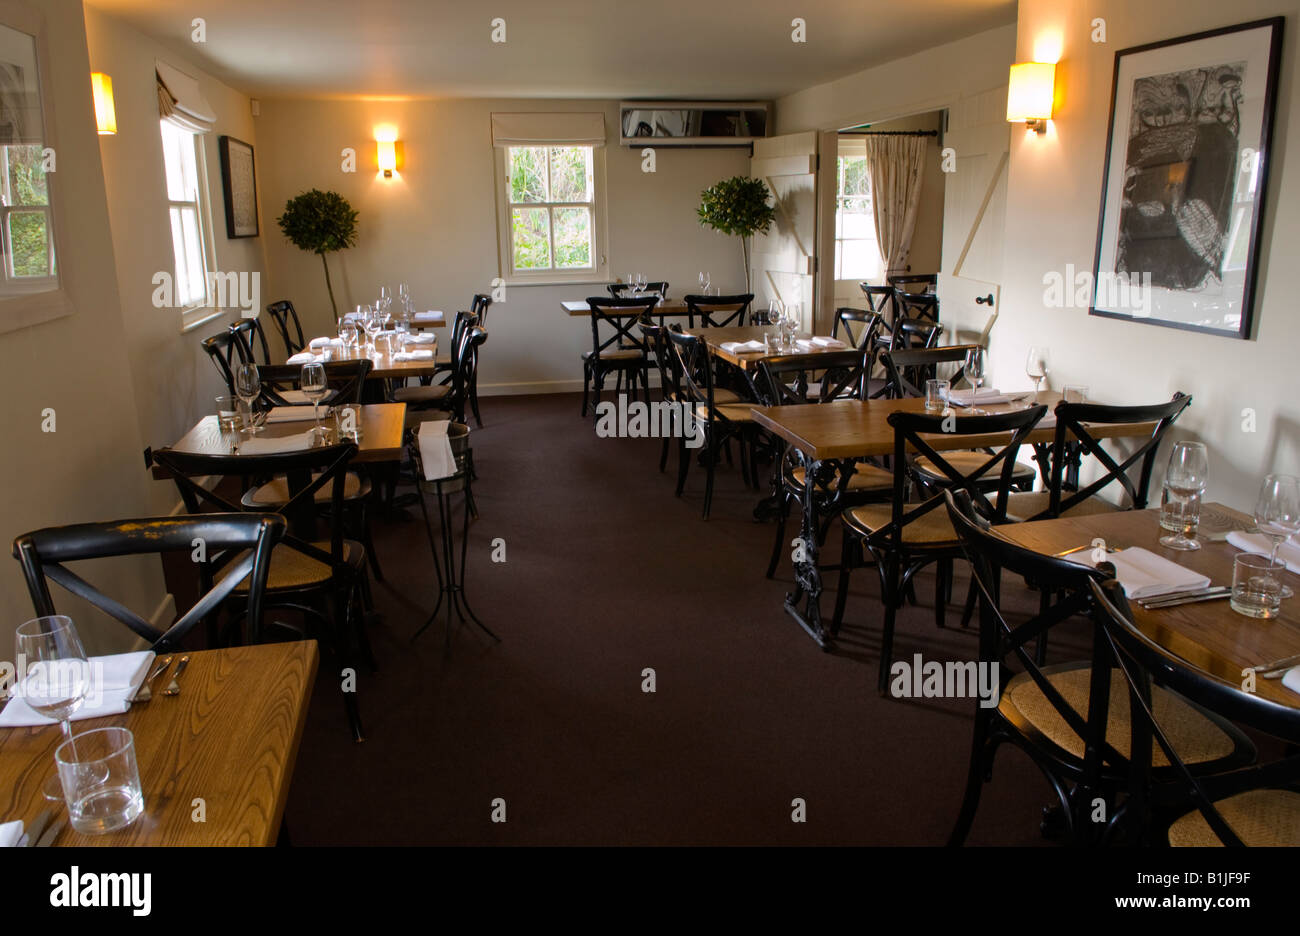 Dining Room Layout In The Walnut Tree Restaurant Llanddewi Skirrid Abergavenny Monmouthshire Wales UK